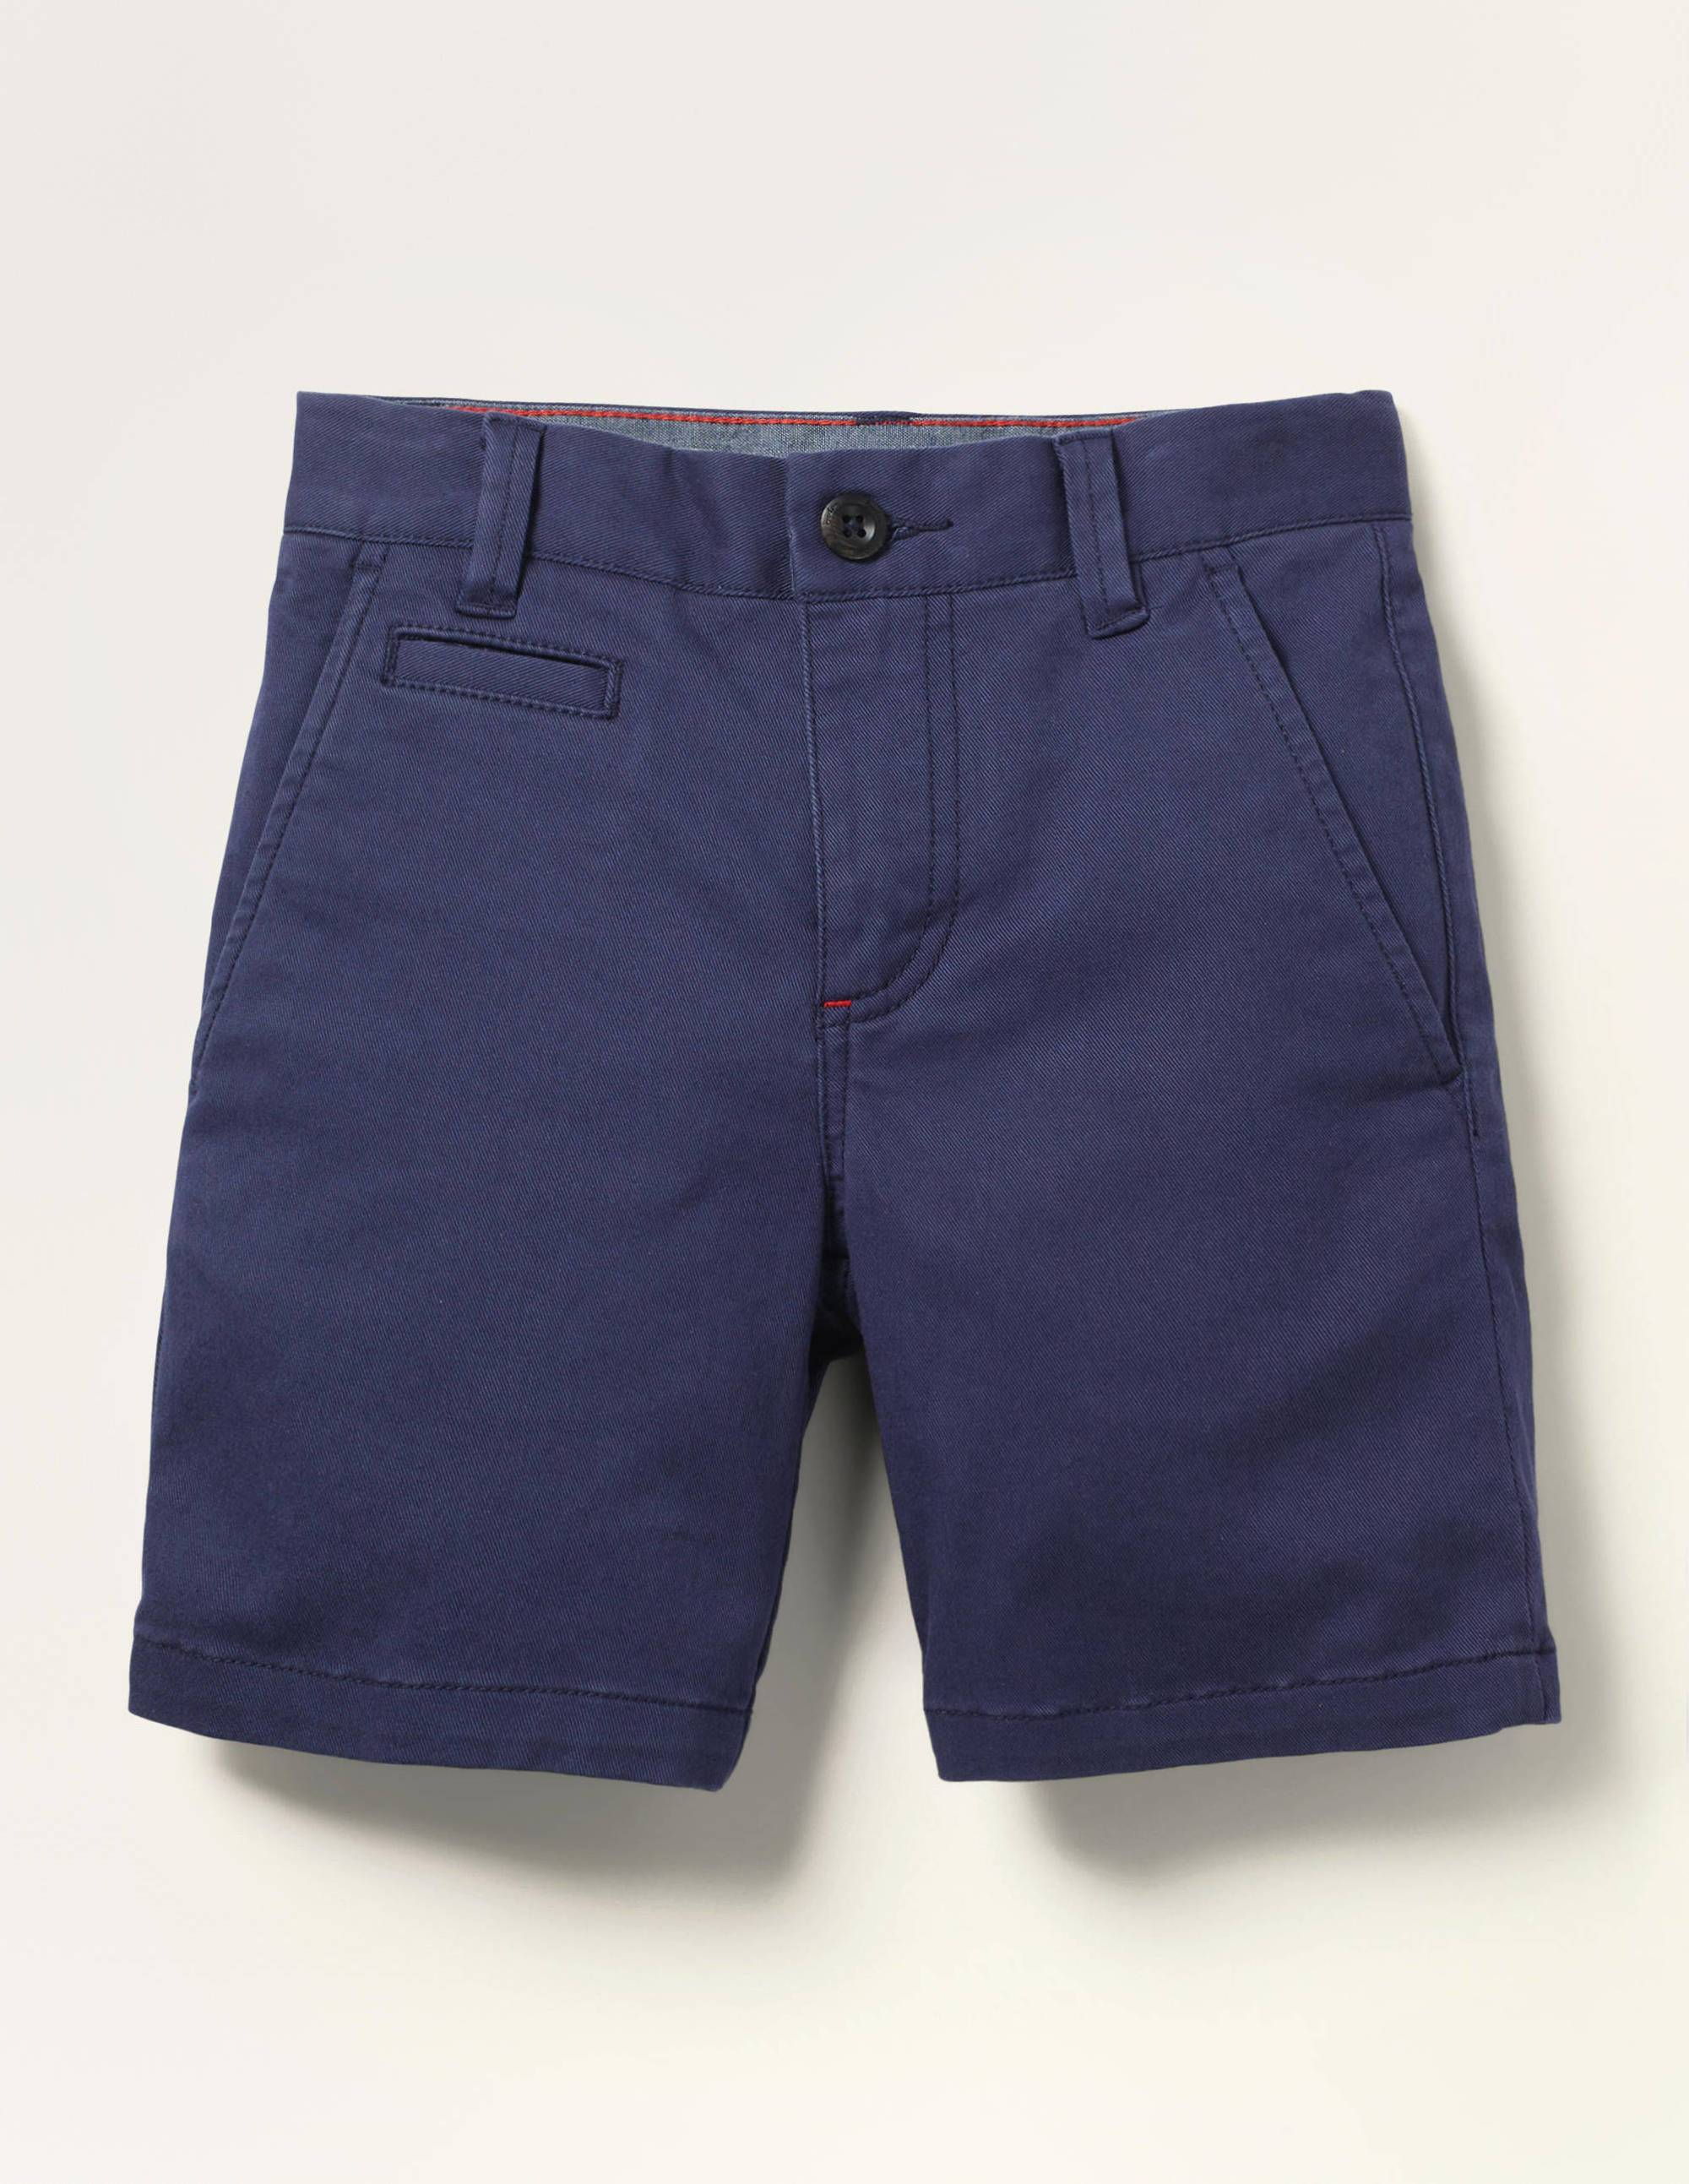 Mini Short chino NAV Femme Boden, Blue - 6a